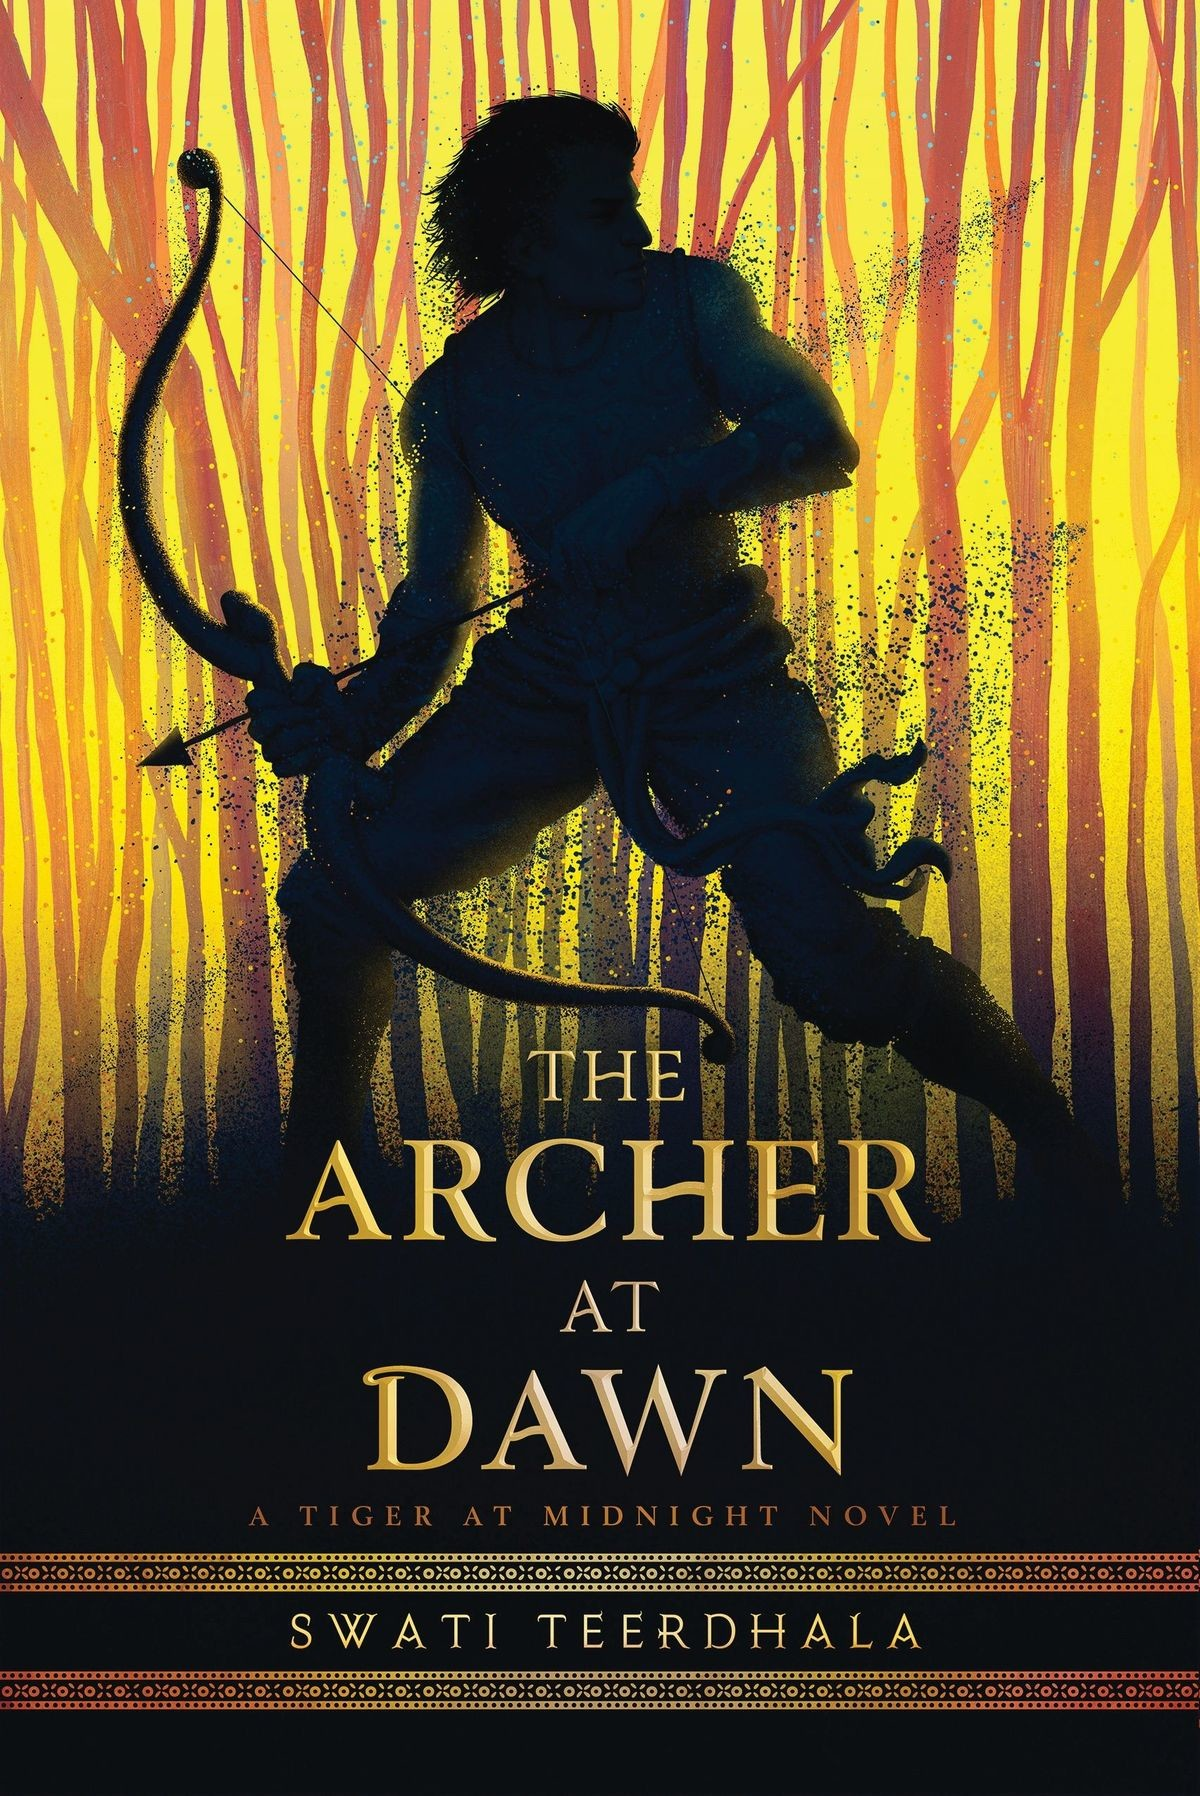 https://www.hypable.com/wp-content/uploads/2019/10/the-archer-at-dawn-cover.jpg